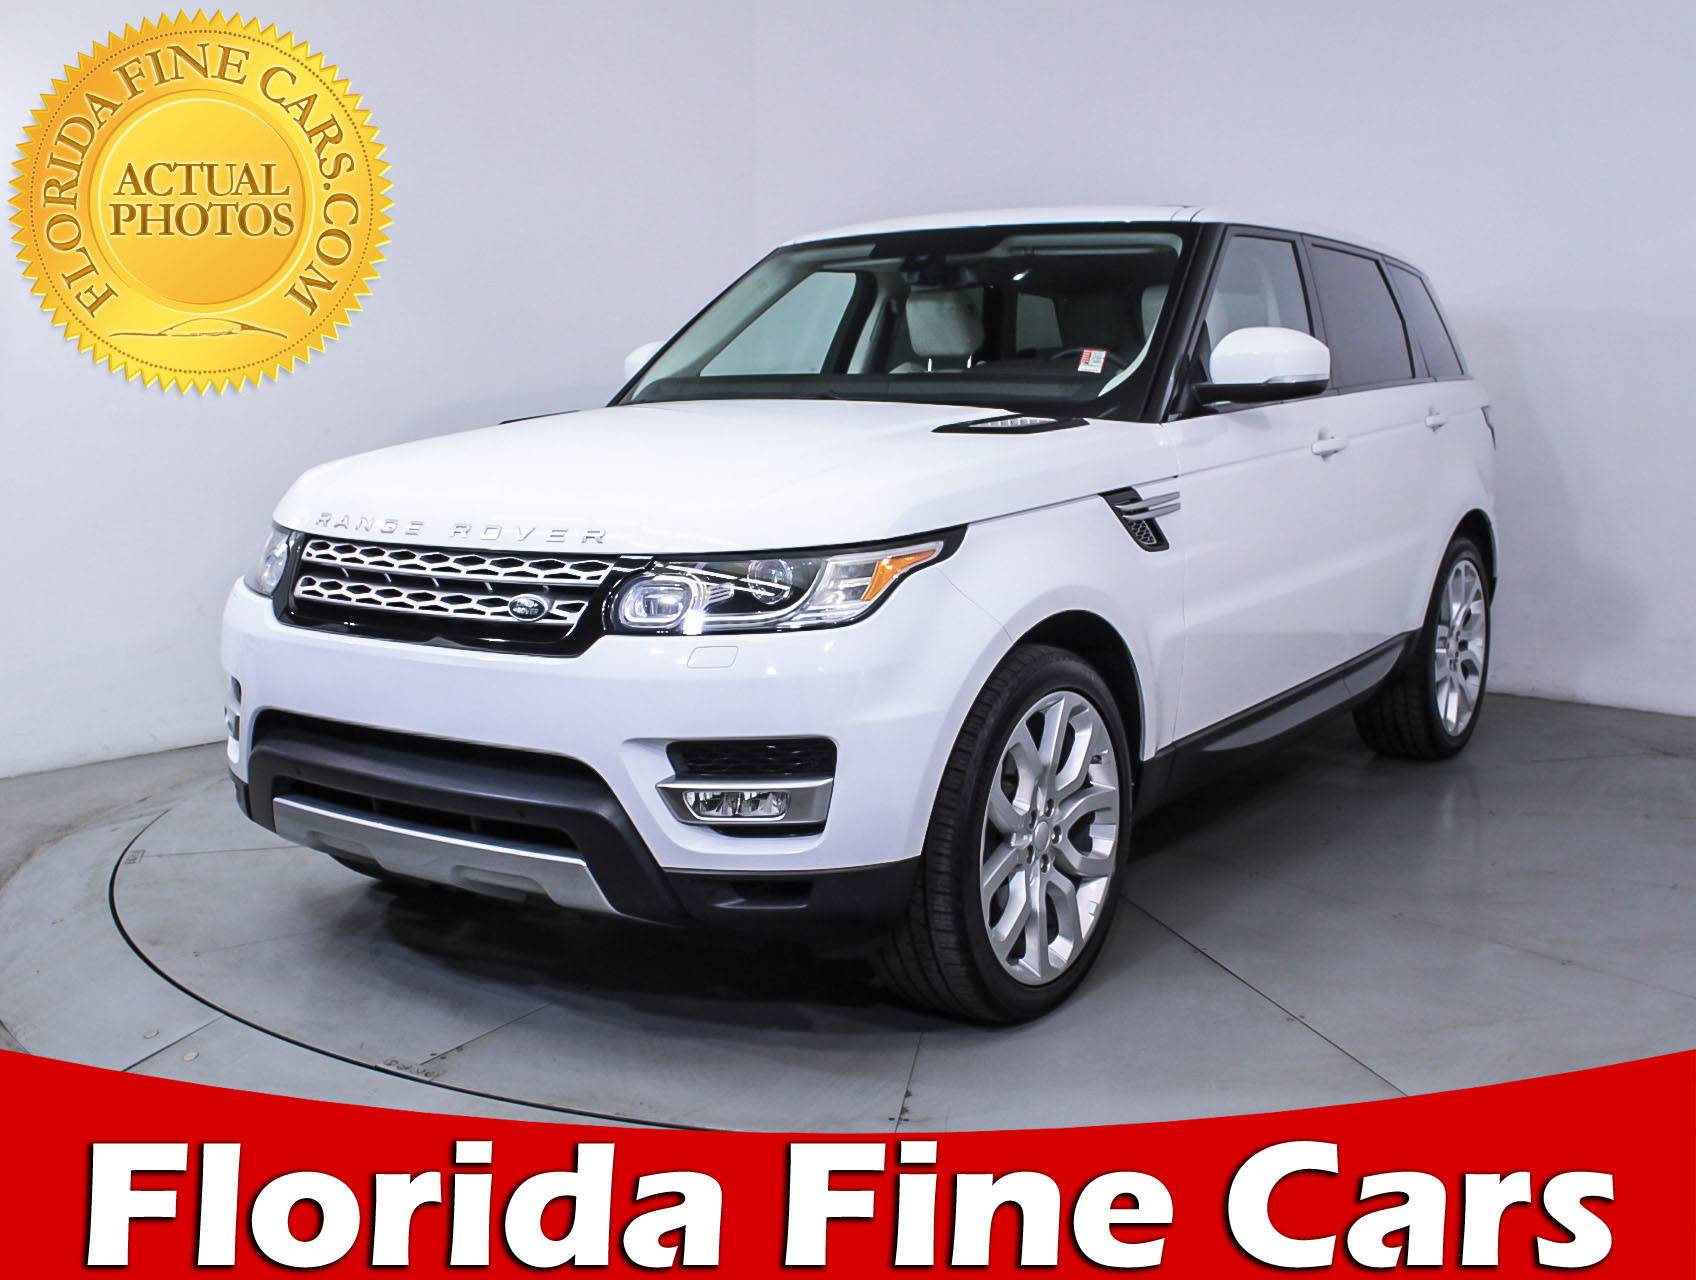 Used 2014 LAND ROVER RANGE ROVER SPORT SUPERCHARGED SUV for sale in